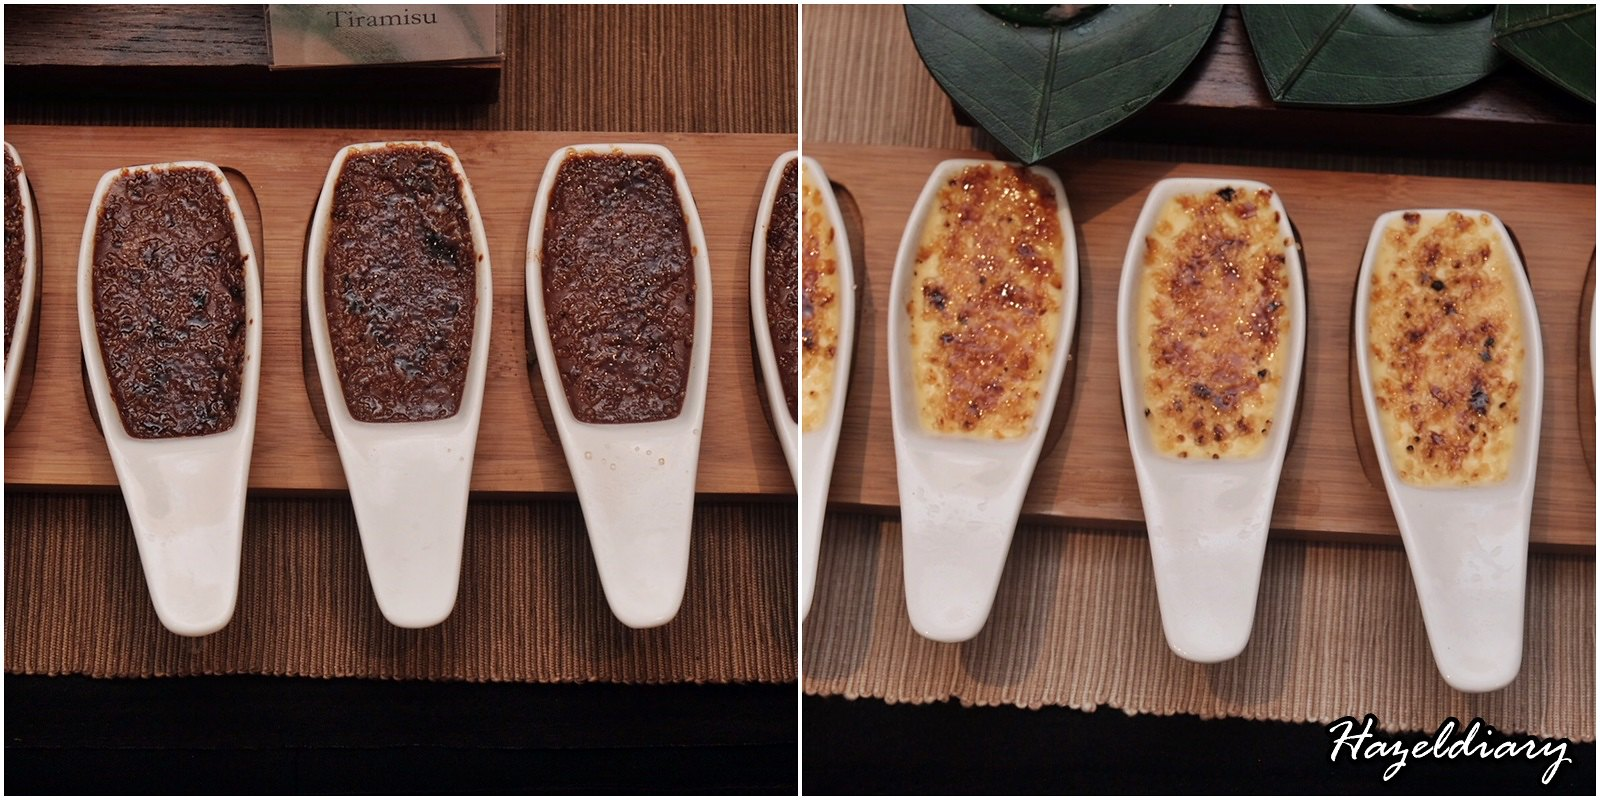 Oh My Matcha Lewin Terrace-Hazeldiary-Creme Brulee